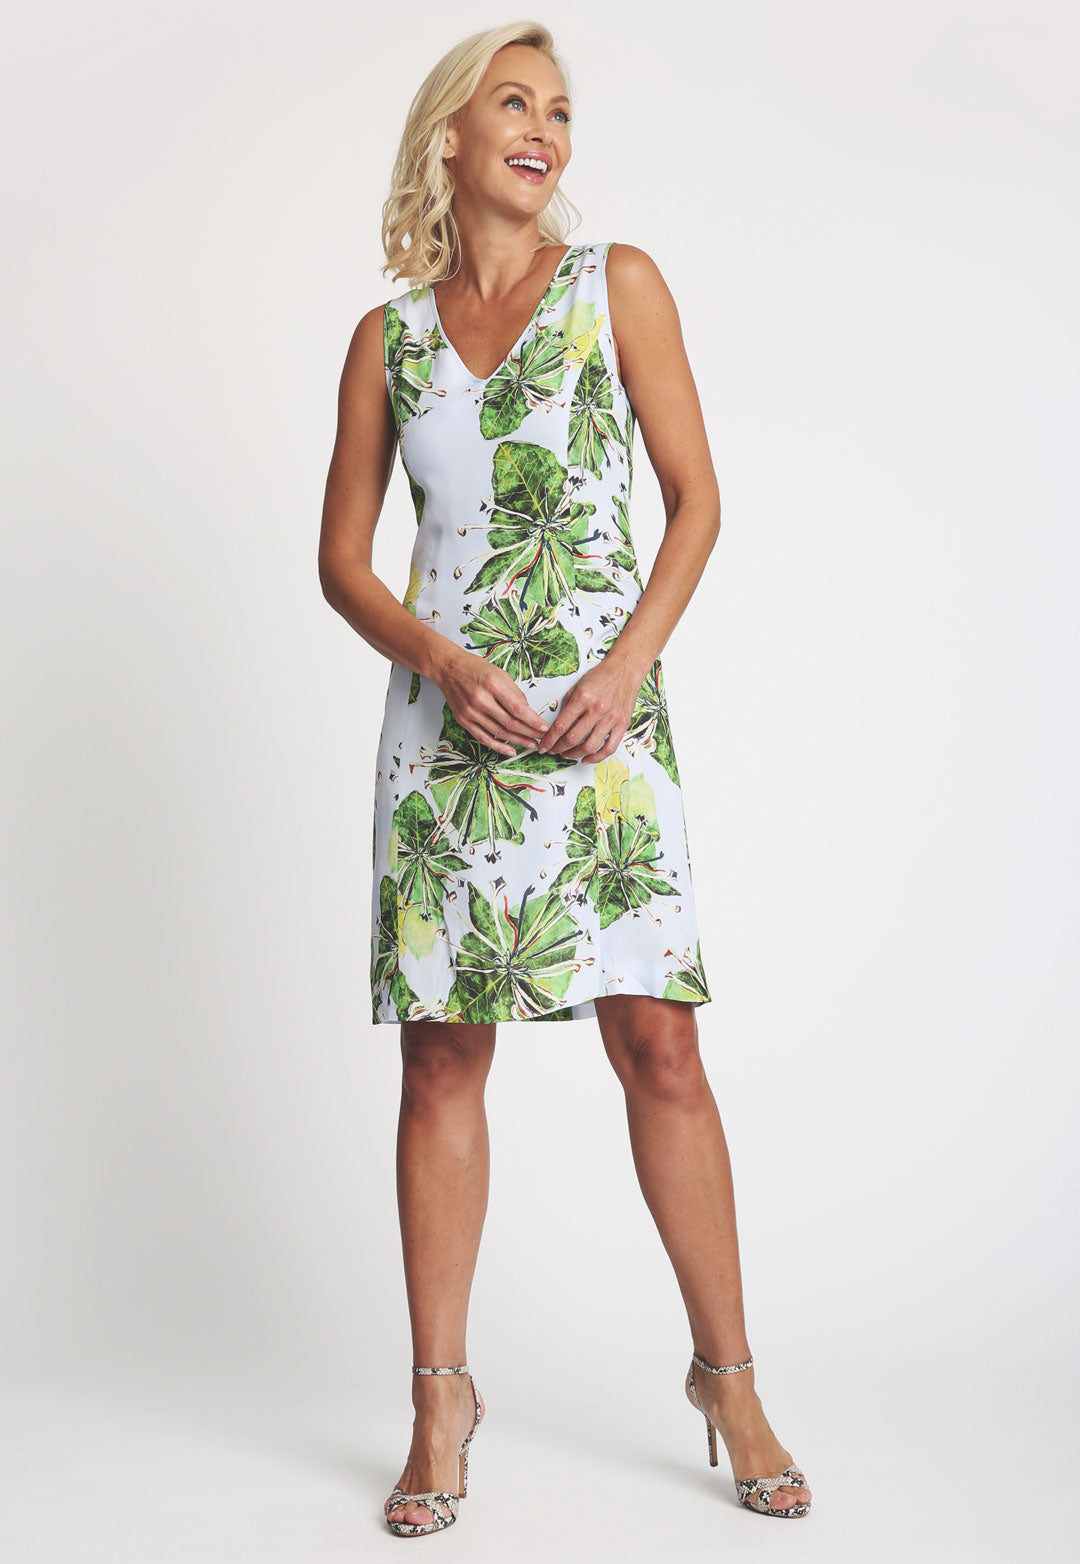 Model in knee length green floral printed sleeveless dress